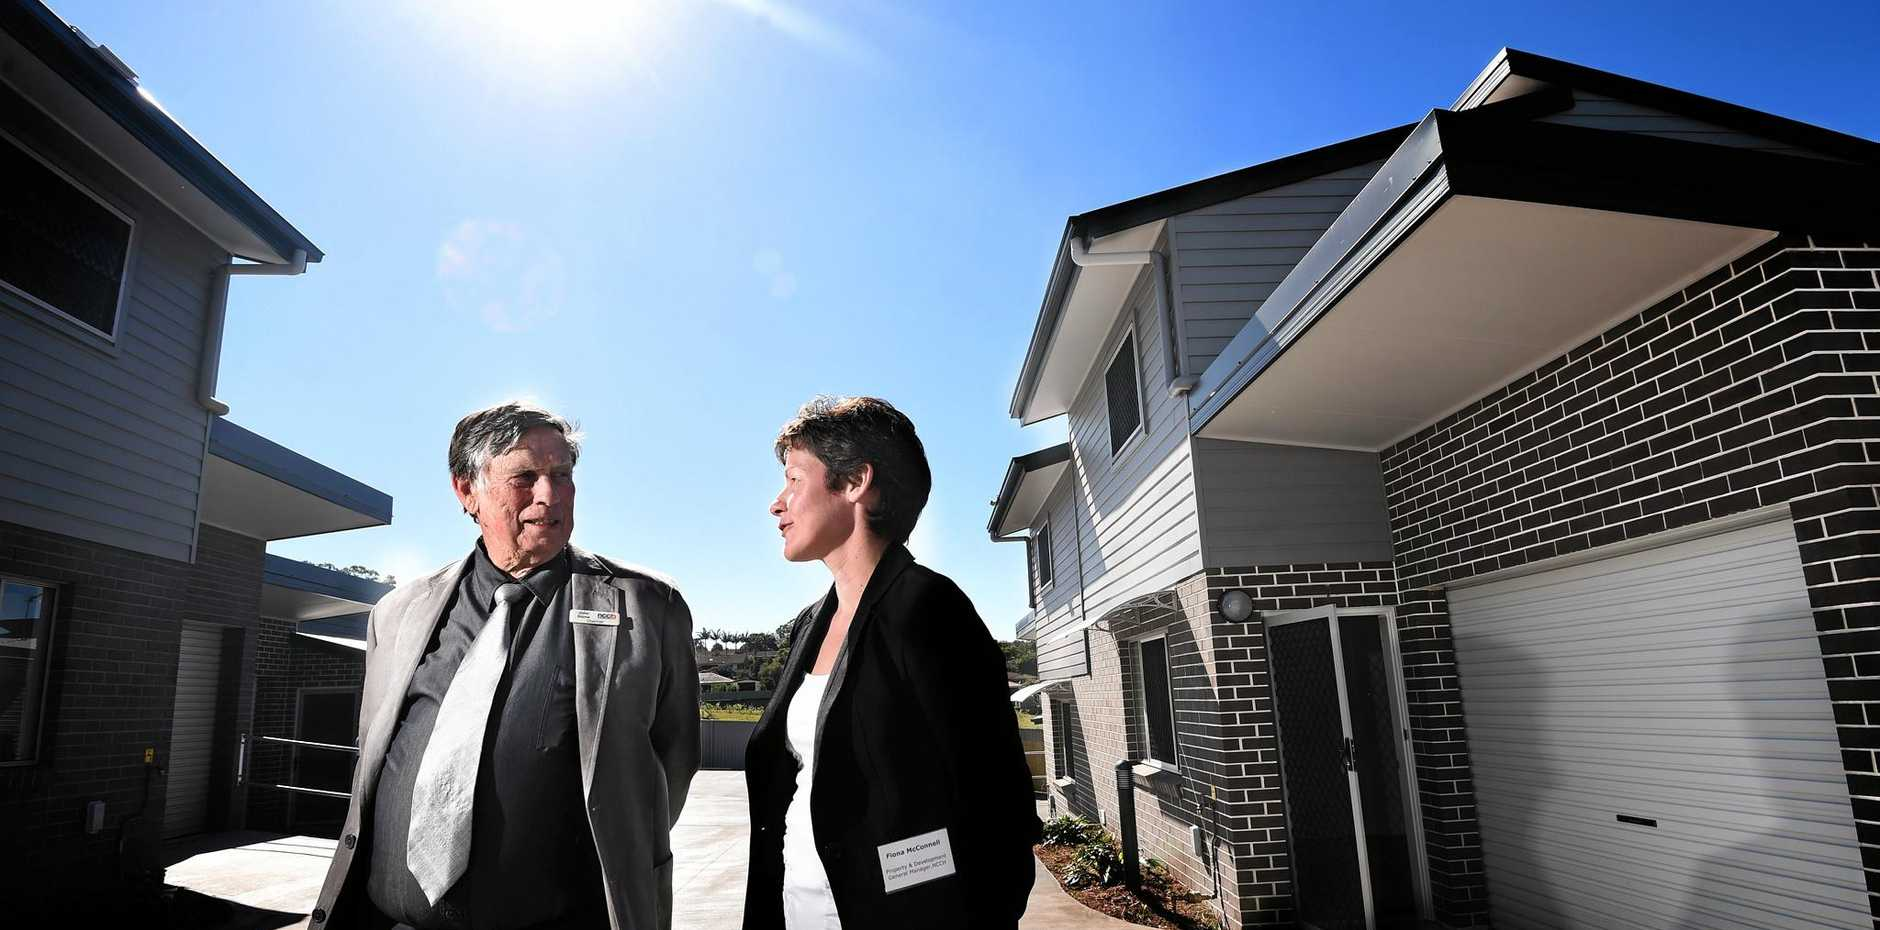 AFFORDABLE HOUSING: North Coast Community Housing's opening of Rainforest Creek was attended by NCCH Chairman John Stone and NCCH general manager Fiona McConnell.